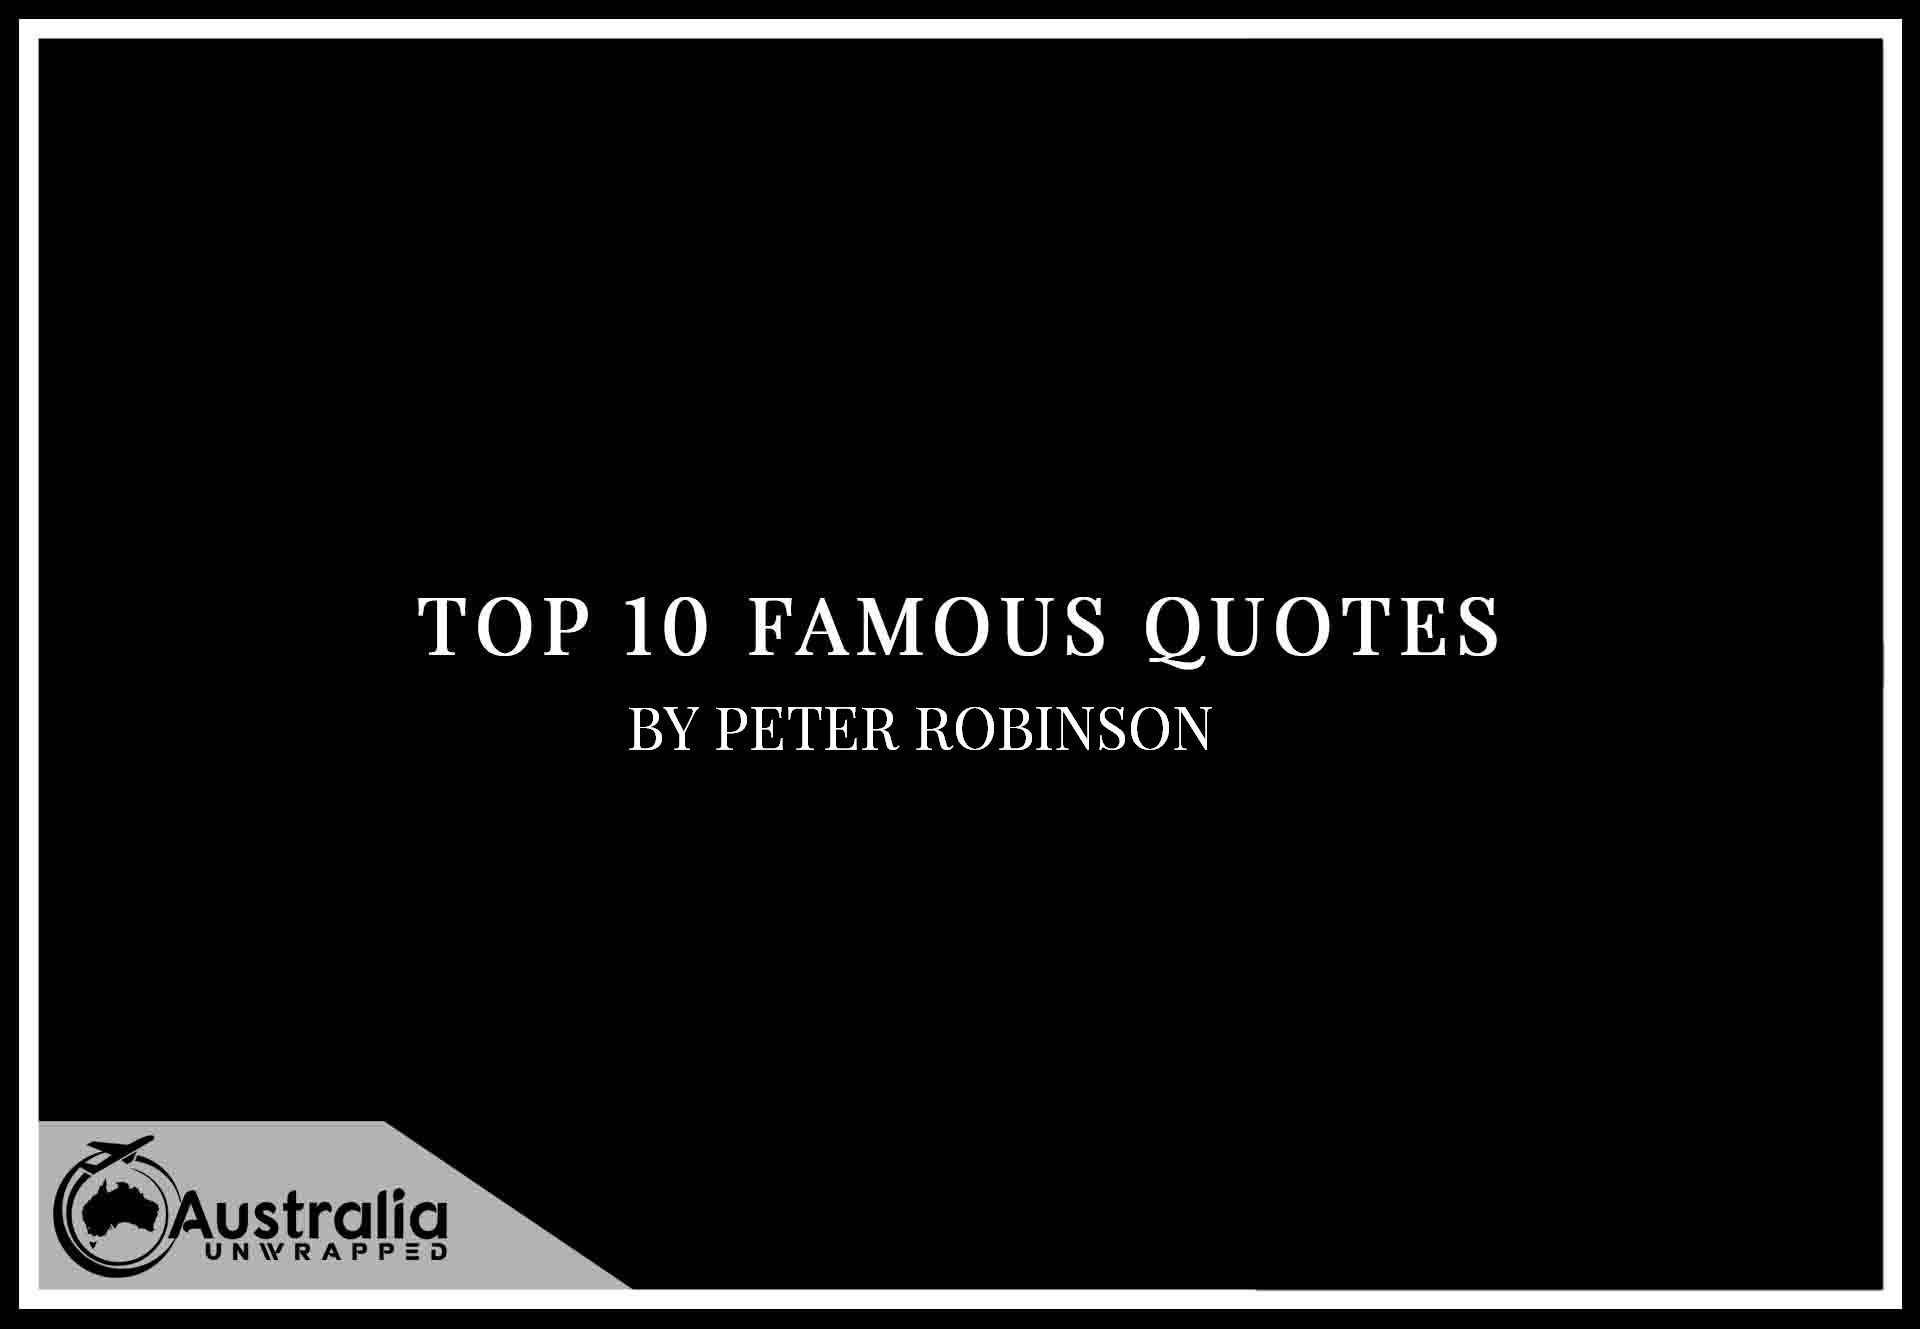 Top 10 Famous Quotes by Author Peter Robinson